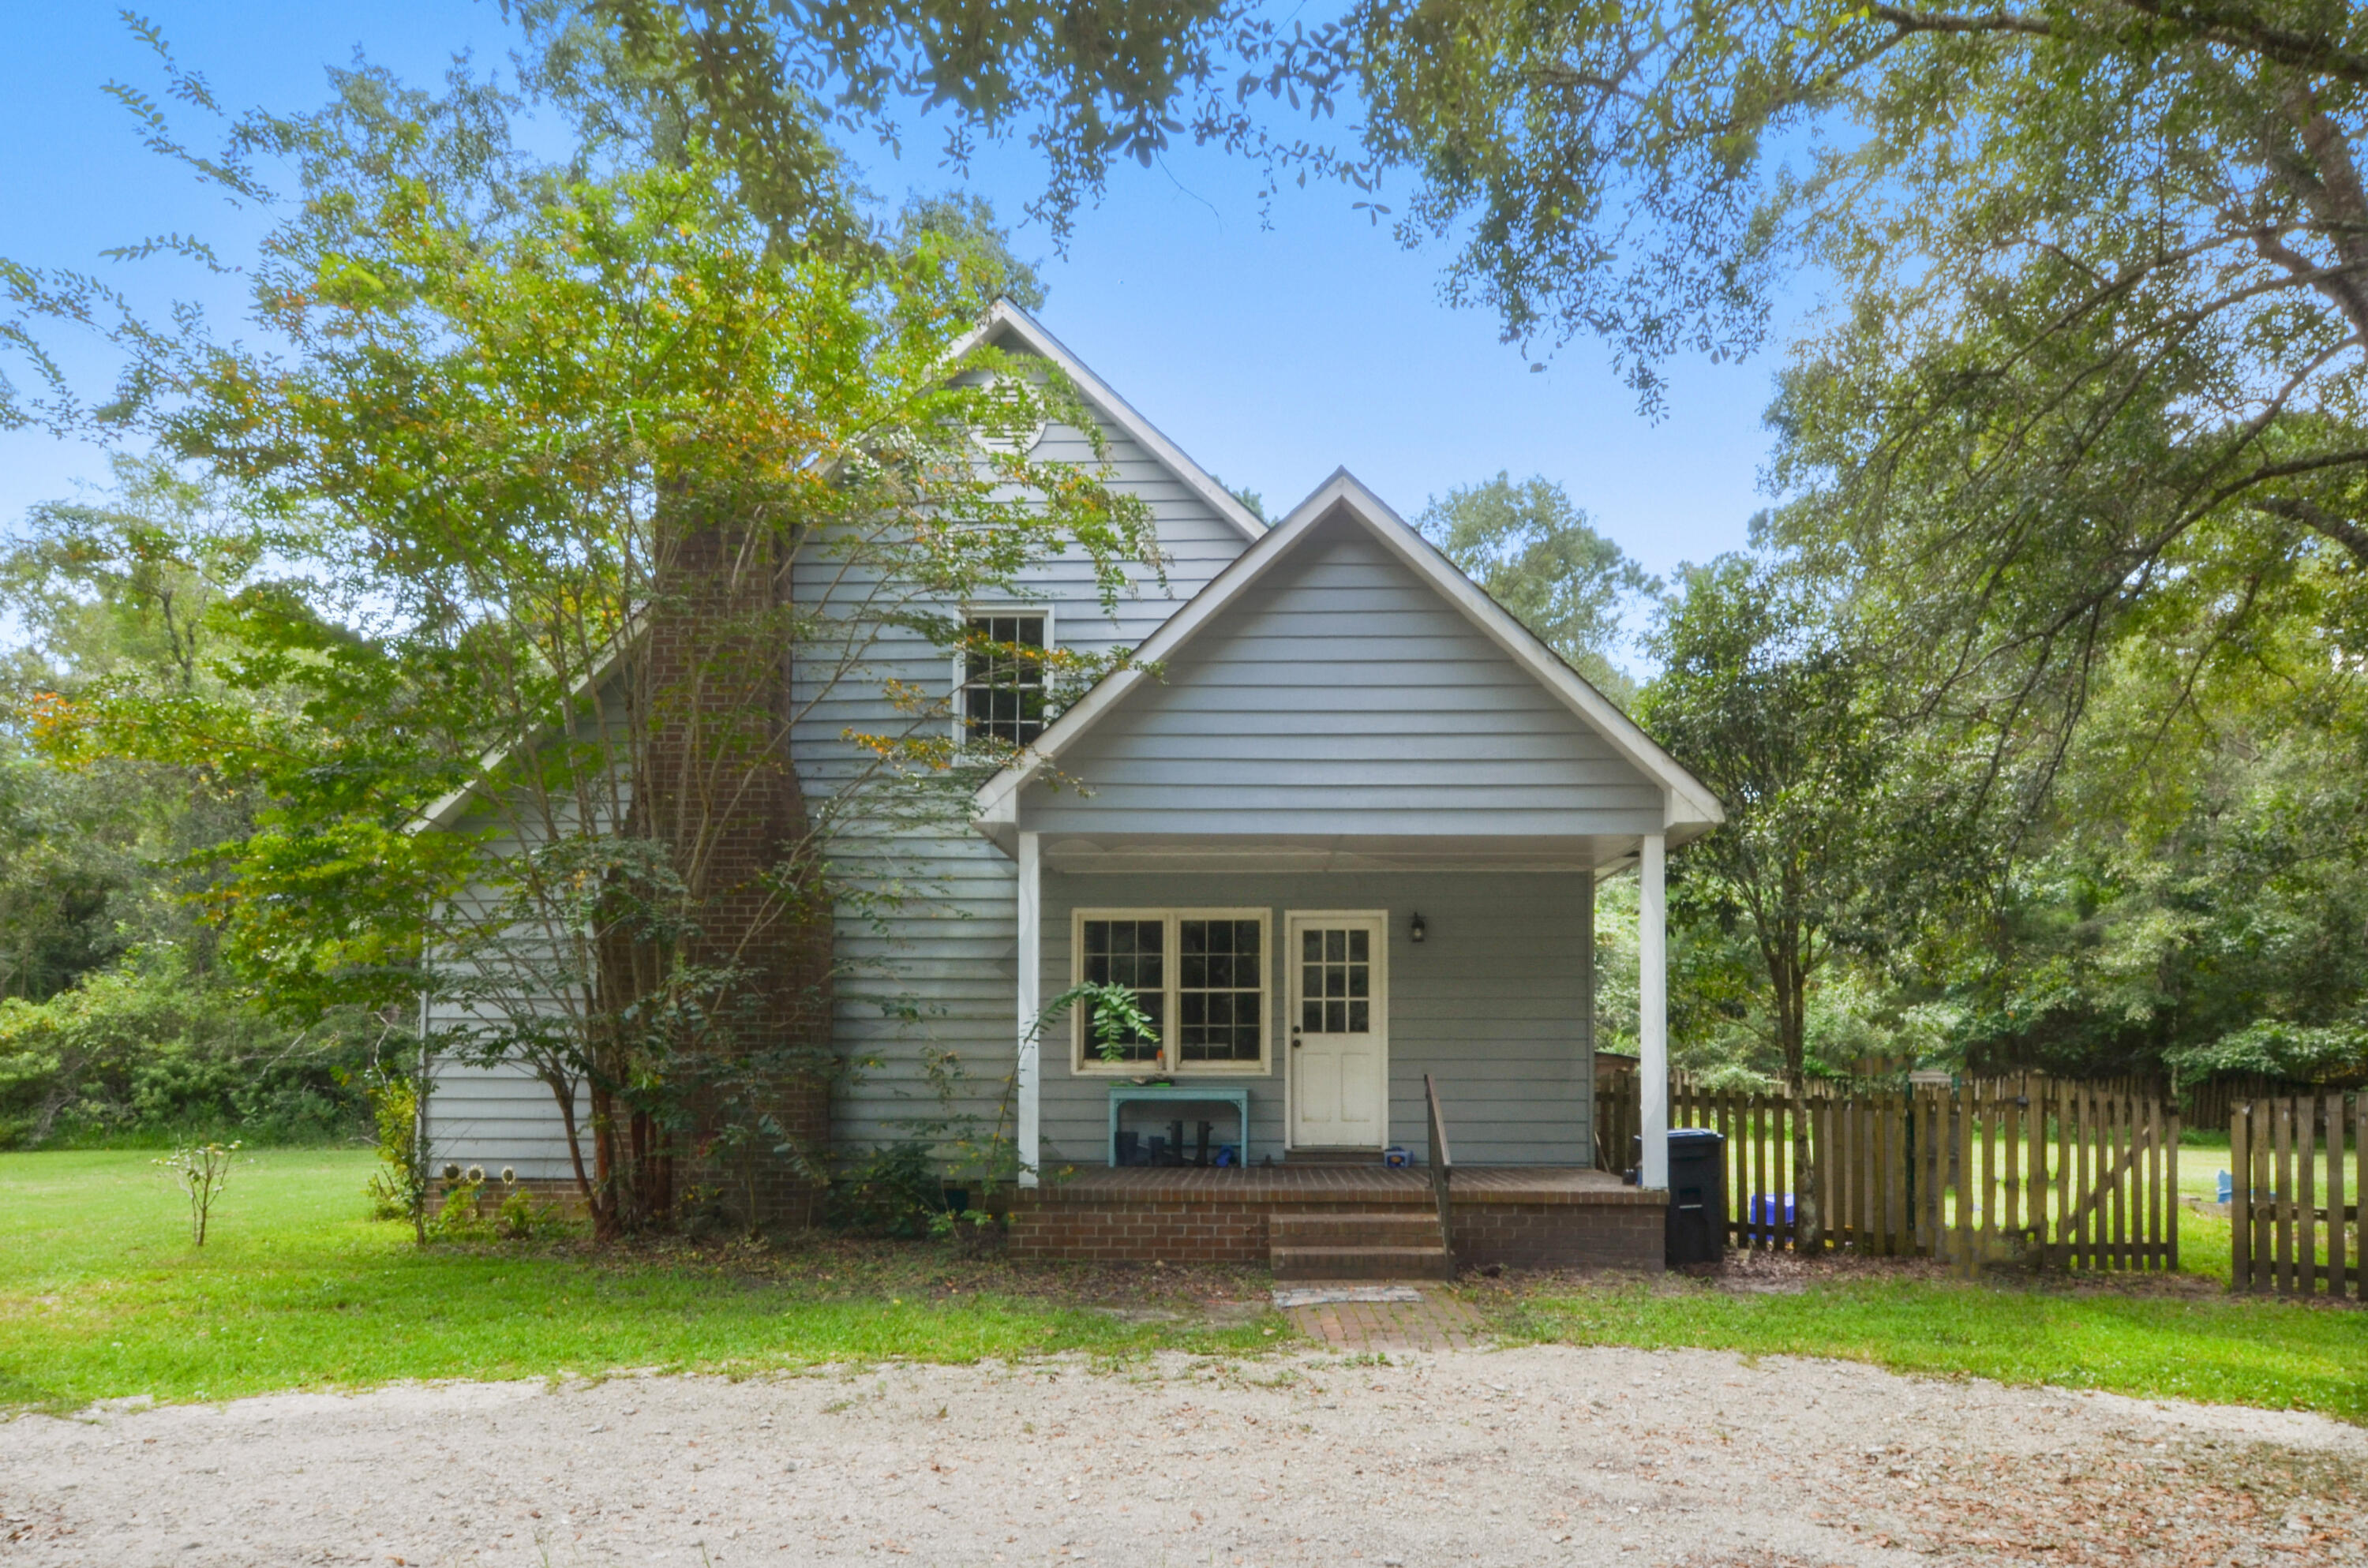 Set in the middle of a 3-acre tract, this lovely 4 bedroom, 2.5 bathroom home offers privacy while still having easy access to everything. CREECS charter school is literally right across the road and the restaurants and boat landing are all with a couple of miles. There is a fenced-in back yard and large garage/workshop. The home is on a small crawlspace with just a few steps up to the covered porch and qualifies as above flood code for lower insurance rates. The home has hardwoods throughout. You enter into the kitchen with a room for a 4-person dinette. To your left is one of the home's living areas which includes a fireplace and large window. Next is a dining room with built-in cabinets with glass doors to display your china. Beyond the dining room is the second living area with an exterior door and stairs leading to the upstairs. Around the corner is the downstairs master bedroom with dual closets. From the kitchen, you can also go straight down the hallway which includes a pantry, laundry room with back door to fenced yard, half bath, two storage closets, and ends at the master bedroom.  Upstairs are two very large bedrooms with dual closets and dormer windows. The third upstairs bedroom is average size and includes a closet but could also make a great office or workout room with a view out to the backyard. The layout of the home could be changed such that you enter into the second living area if you modified the driveway.   In 2018, both HVAC units and all of the ductwork was replaced with top-of-the-line Trane systems and wi-fi enabled thermostats. Under the home was also encapsulated and additional supports were installed by a licensed professional to repair rolling floors. The pantry and upstairs bathroom were also recently renovated.   Home inspection furnished upon request. Listing price reflects repairs needed and home is being sold as-is. Owner is agent/broker.